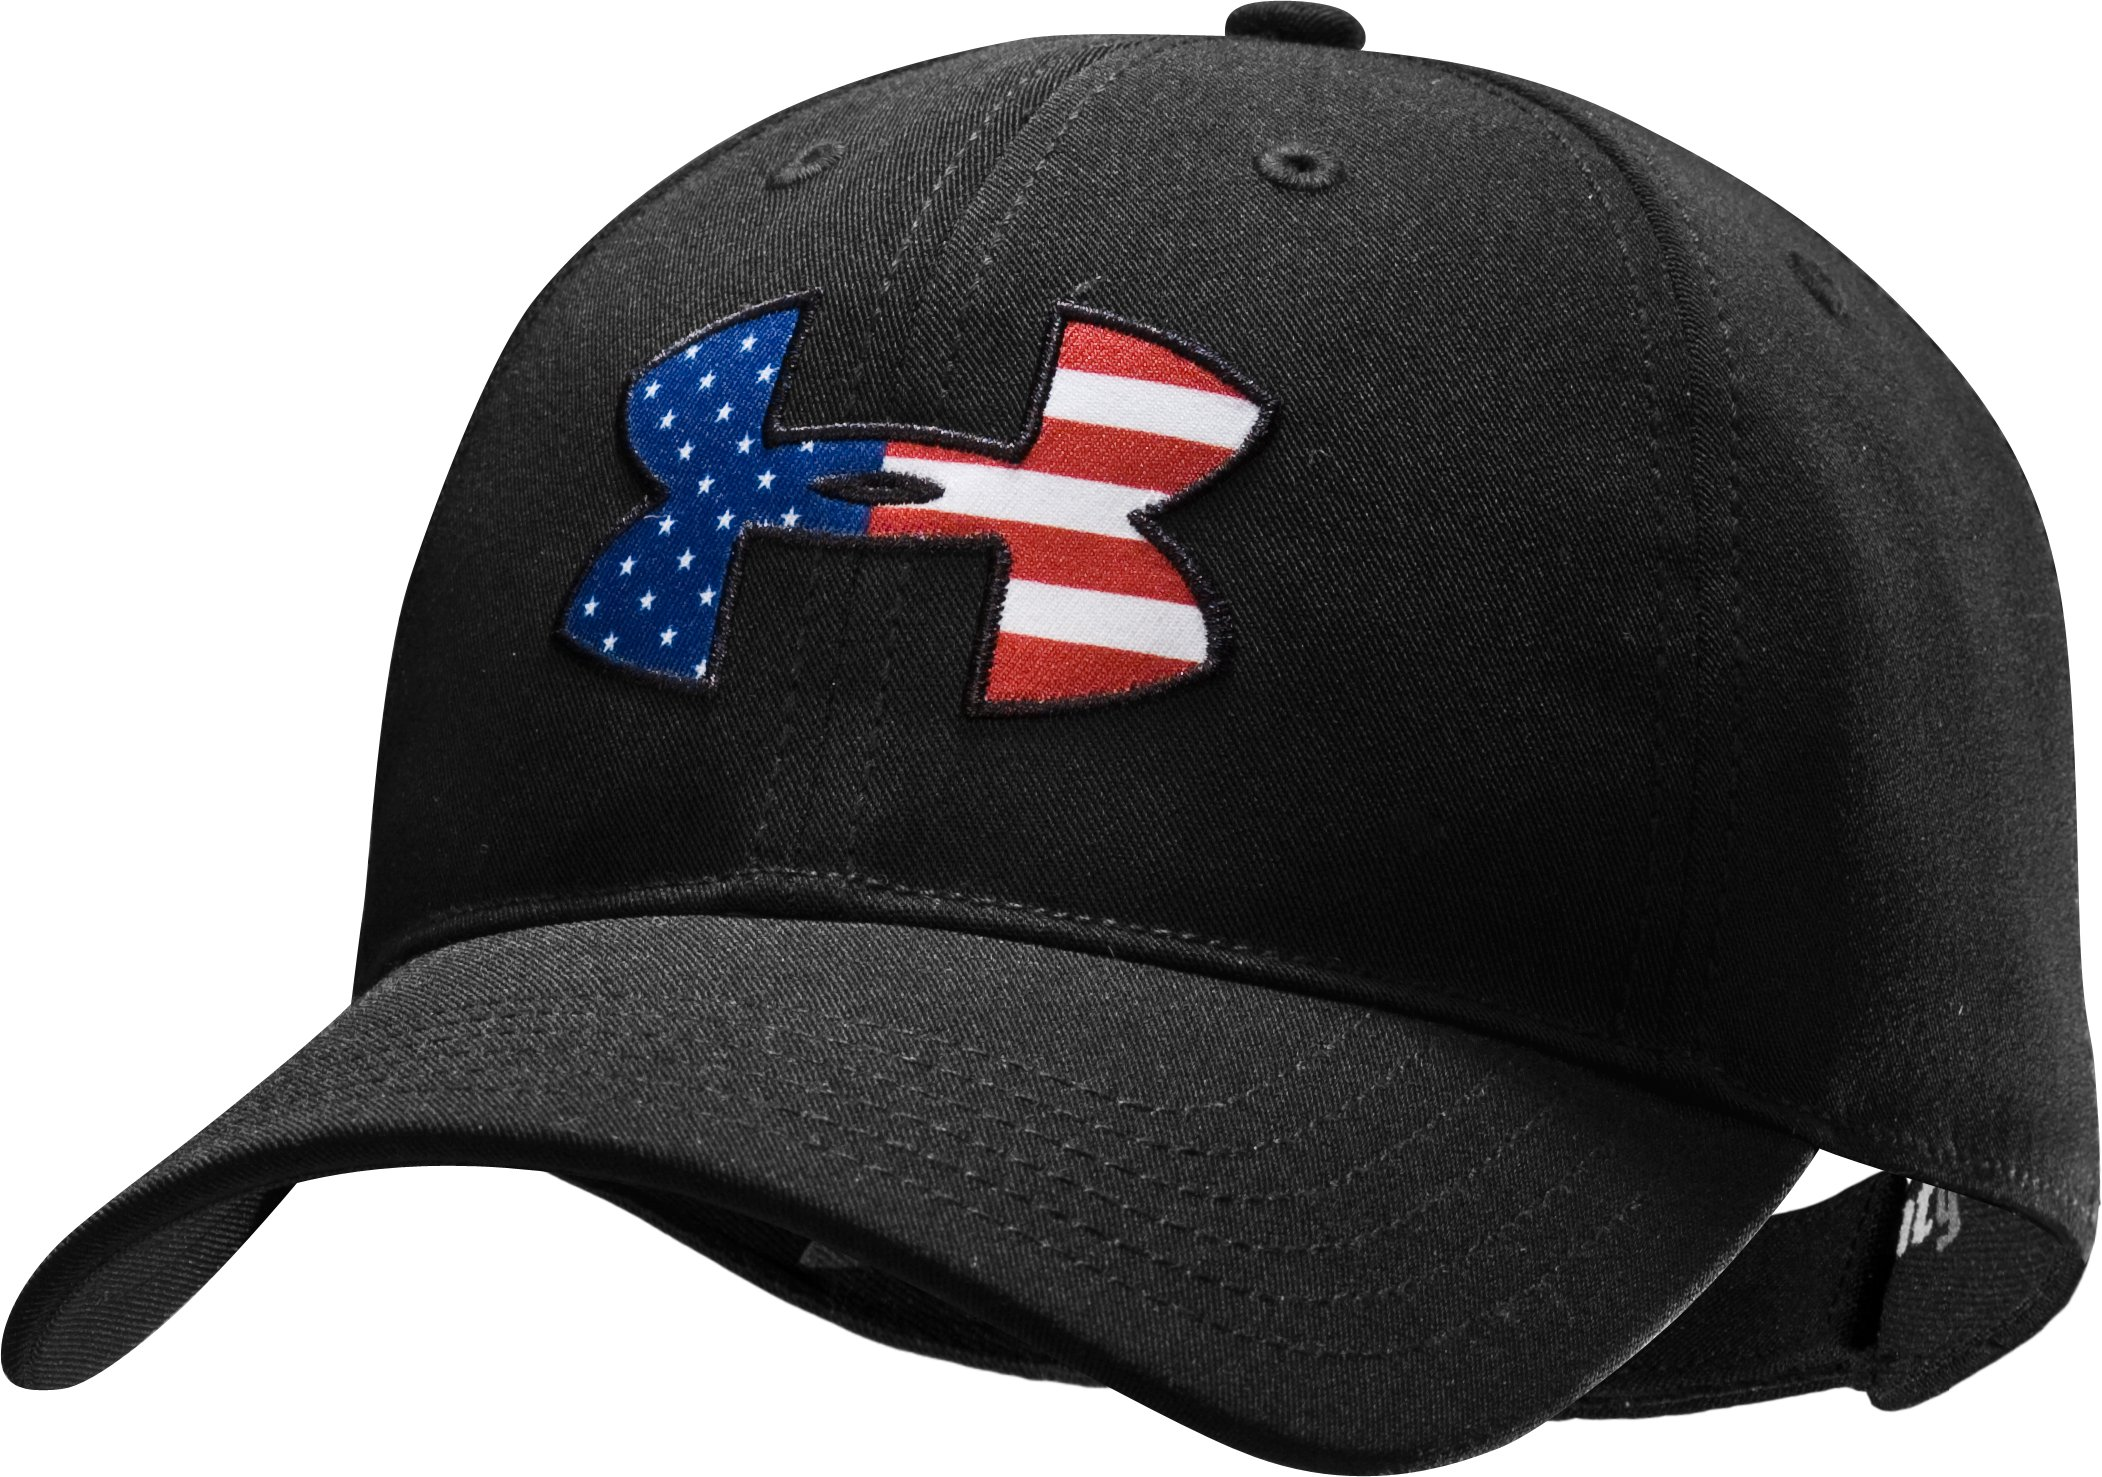 Men's Big Flag Logo Adjustable Cap, Black